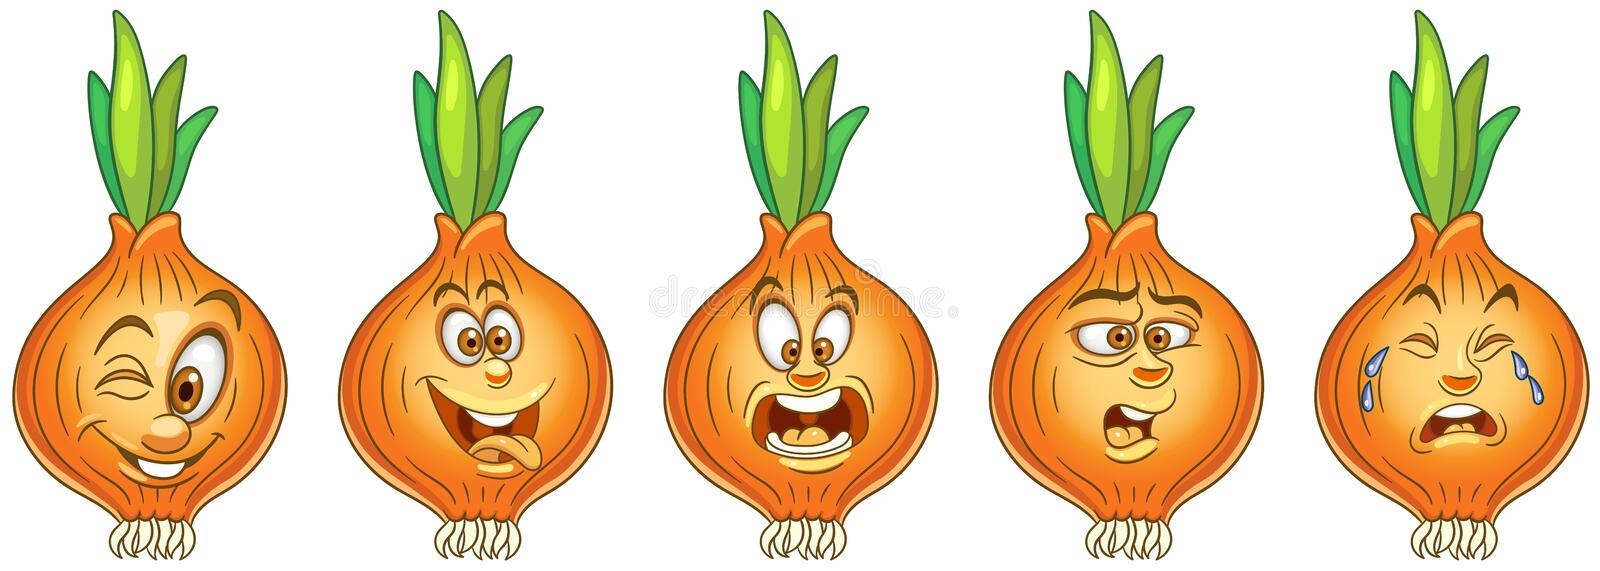 Onion. Vegetable Food concept stock images